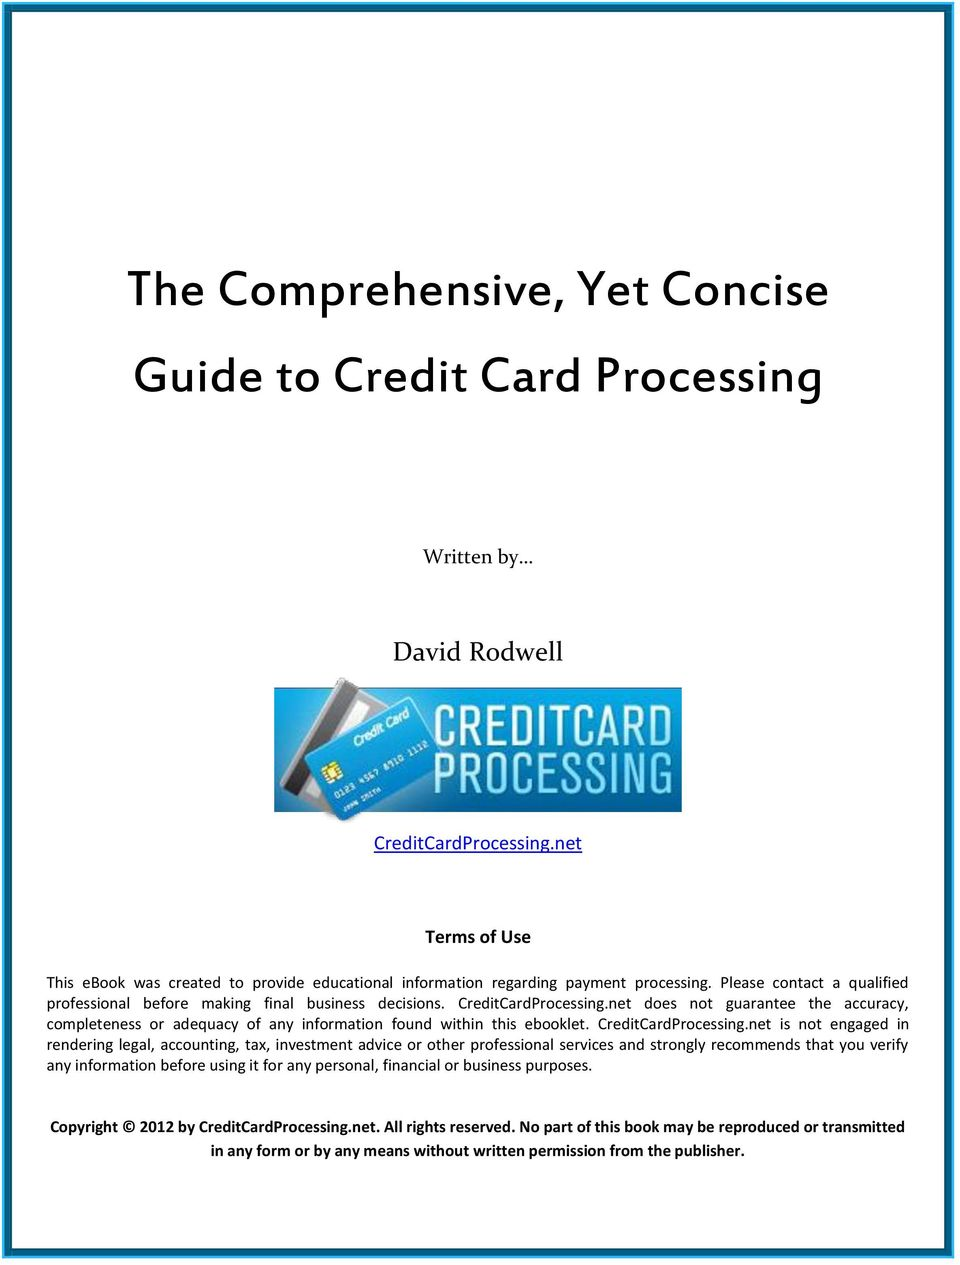 CreditCardProcessing.net does not guarantee the accuracy, completeness or adequacy of any information found within this ebooklet. CreditCardProcessing.